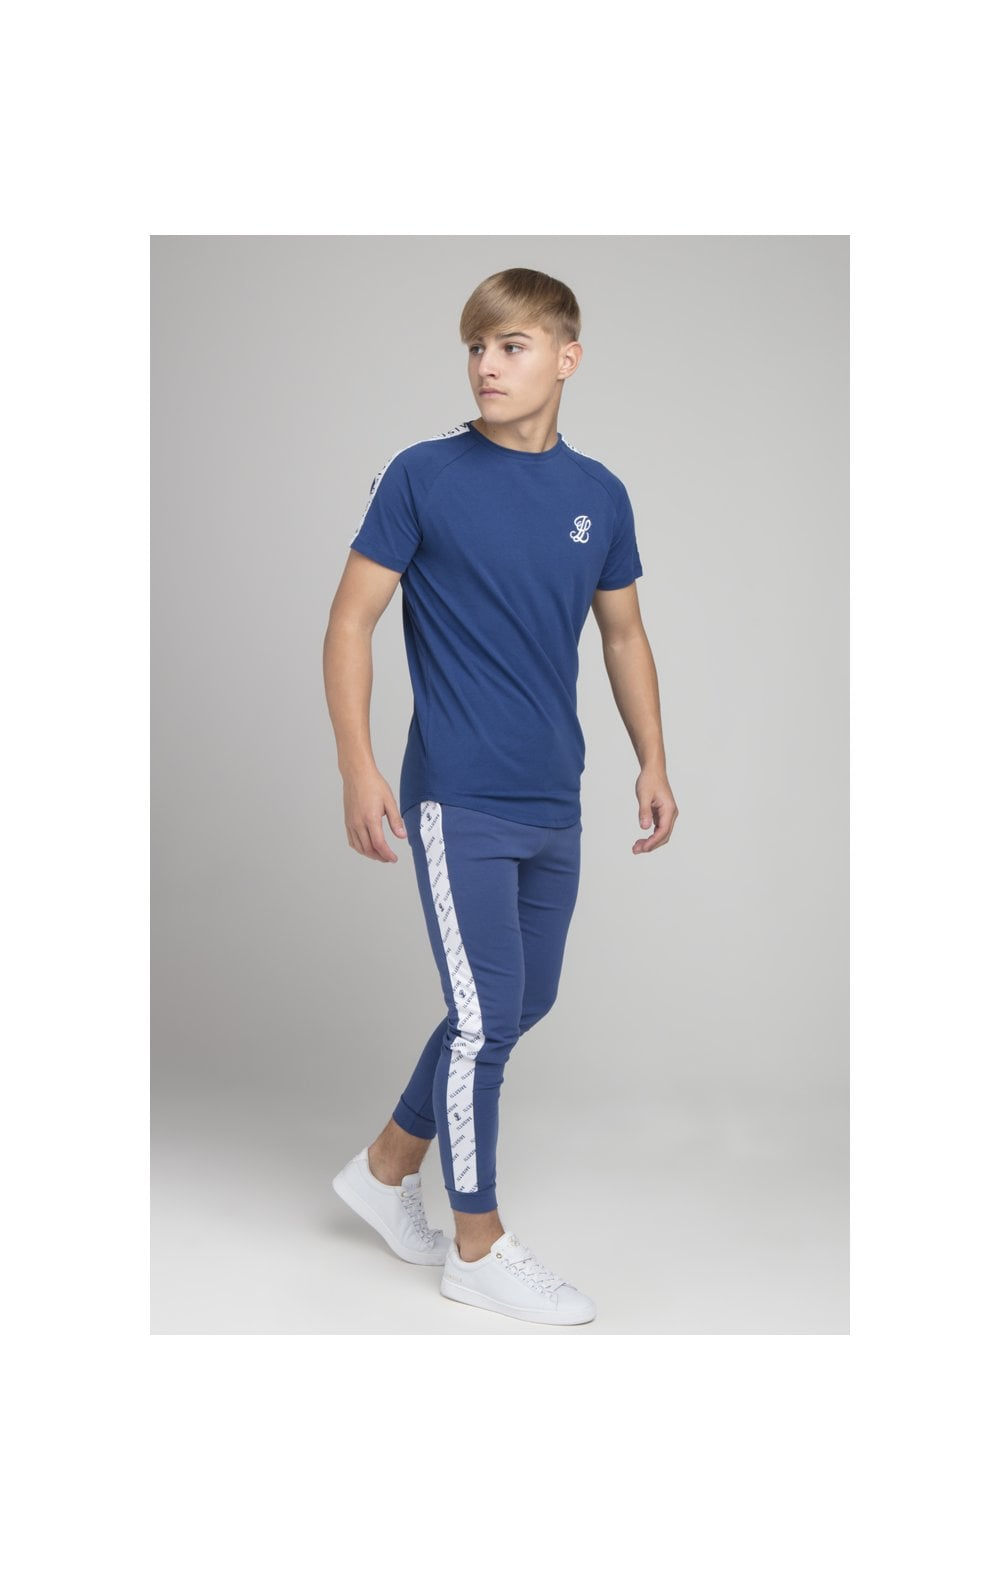 Illusive London Taped Core Tee - Royal Blue (3)